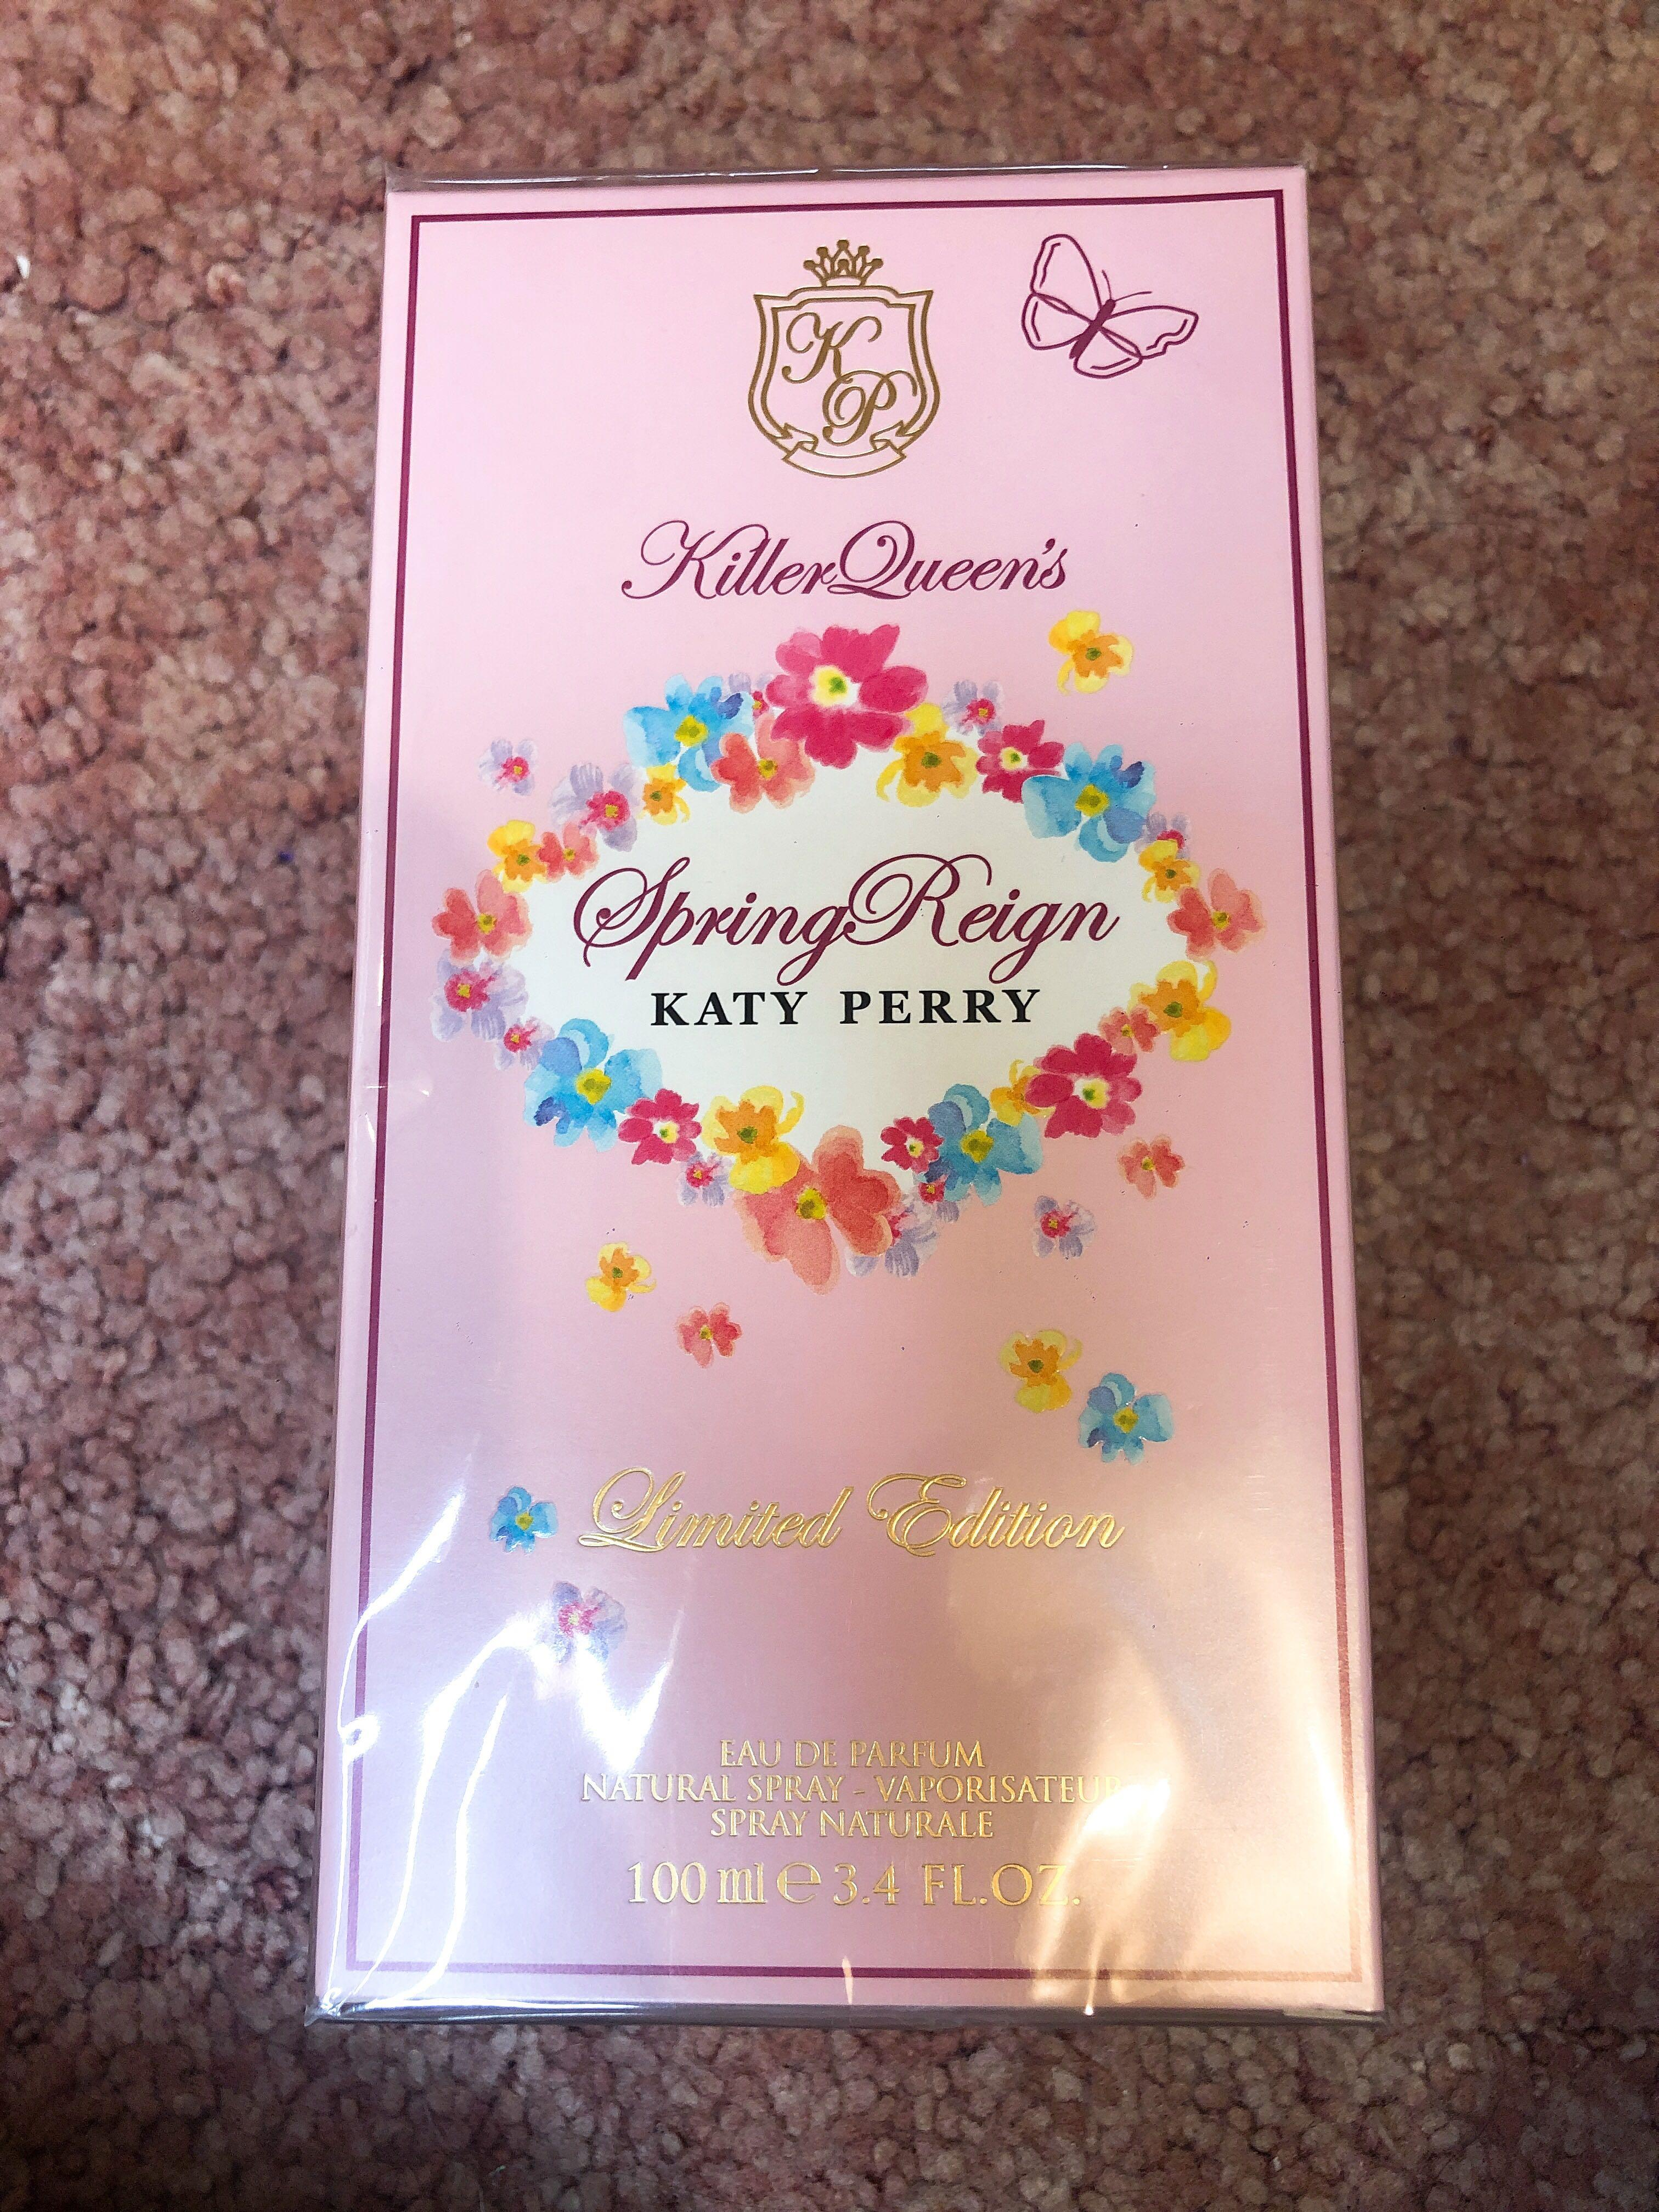 Katy Perry's Limited Edition Spring Reign Parfum 100ml